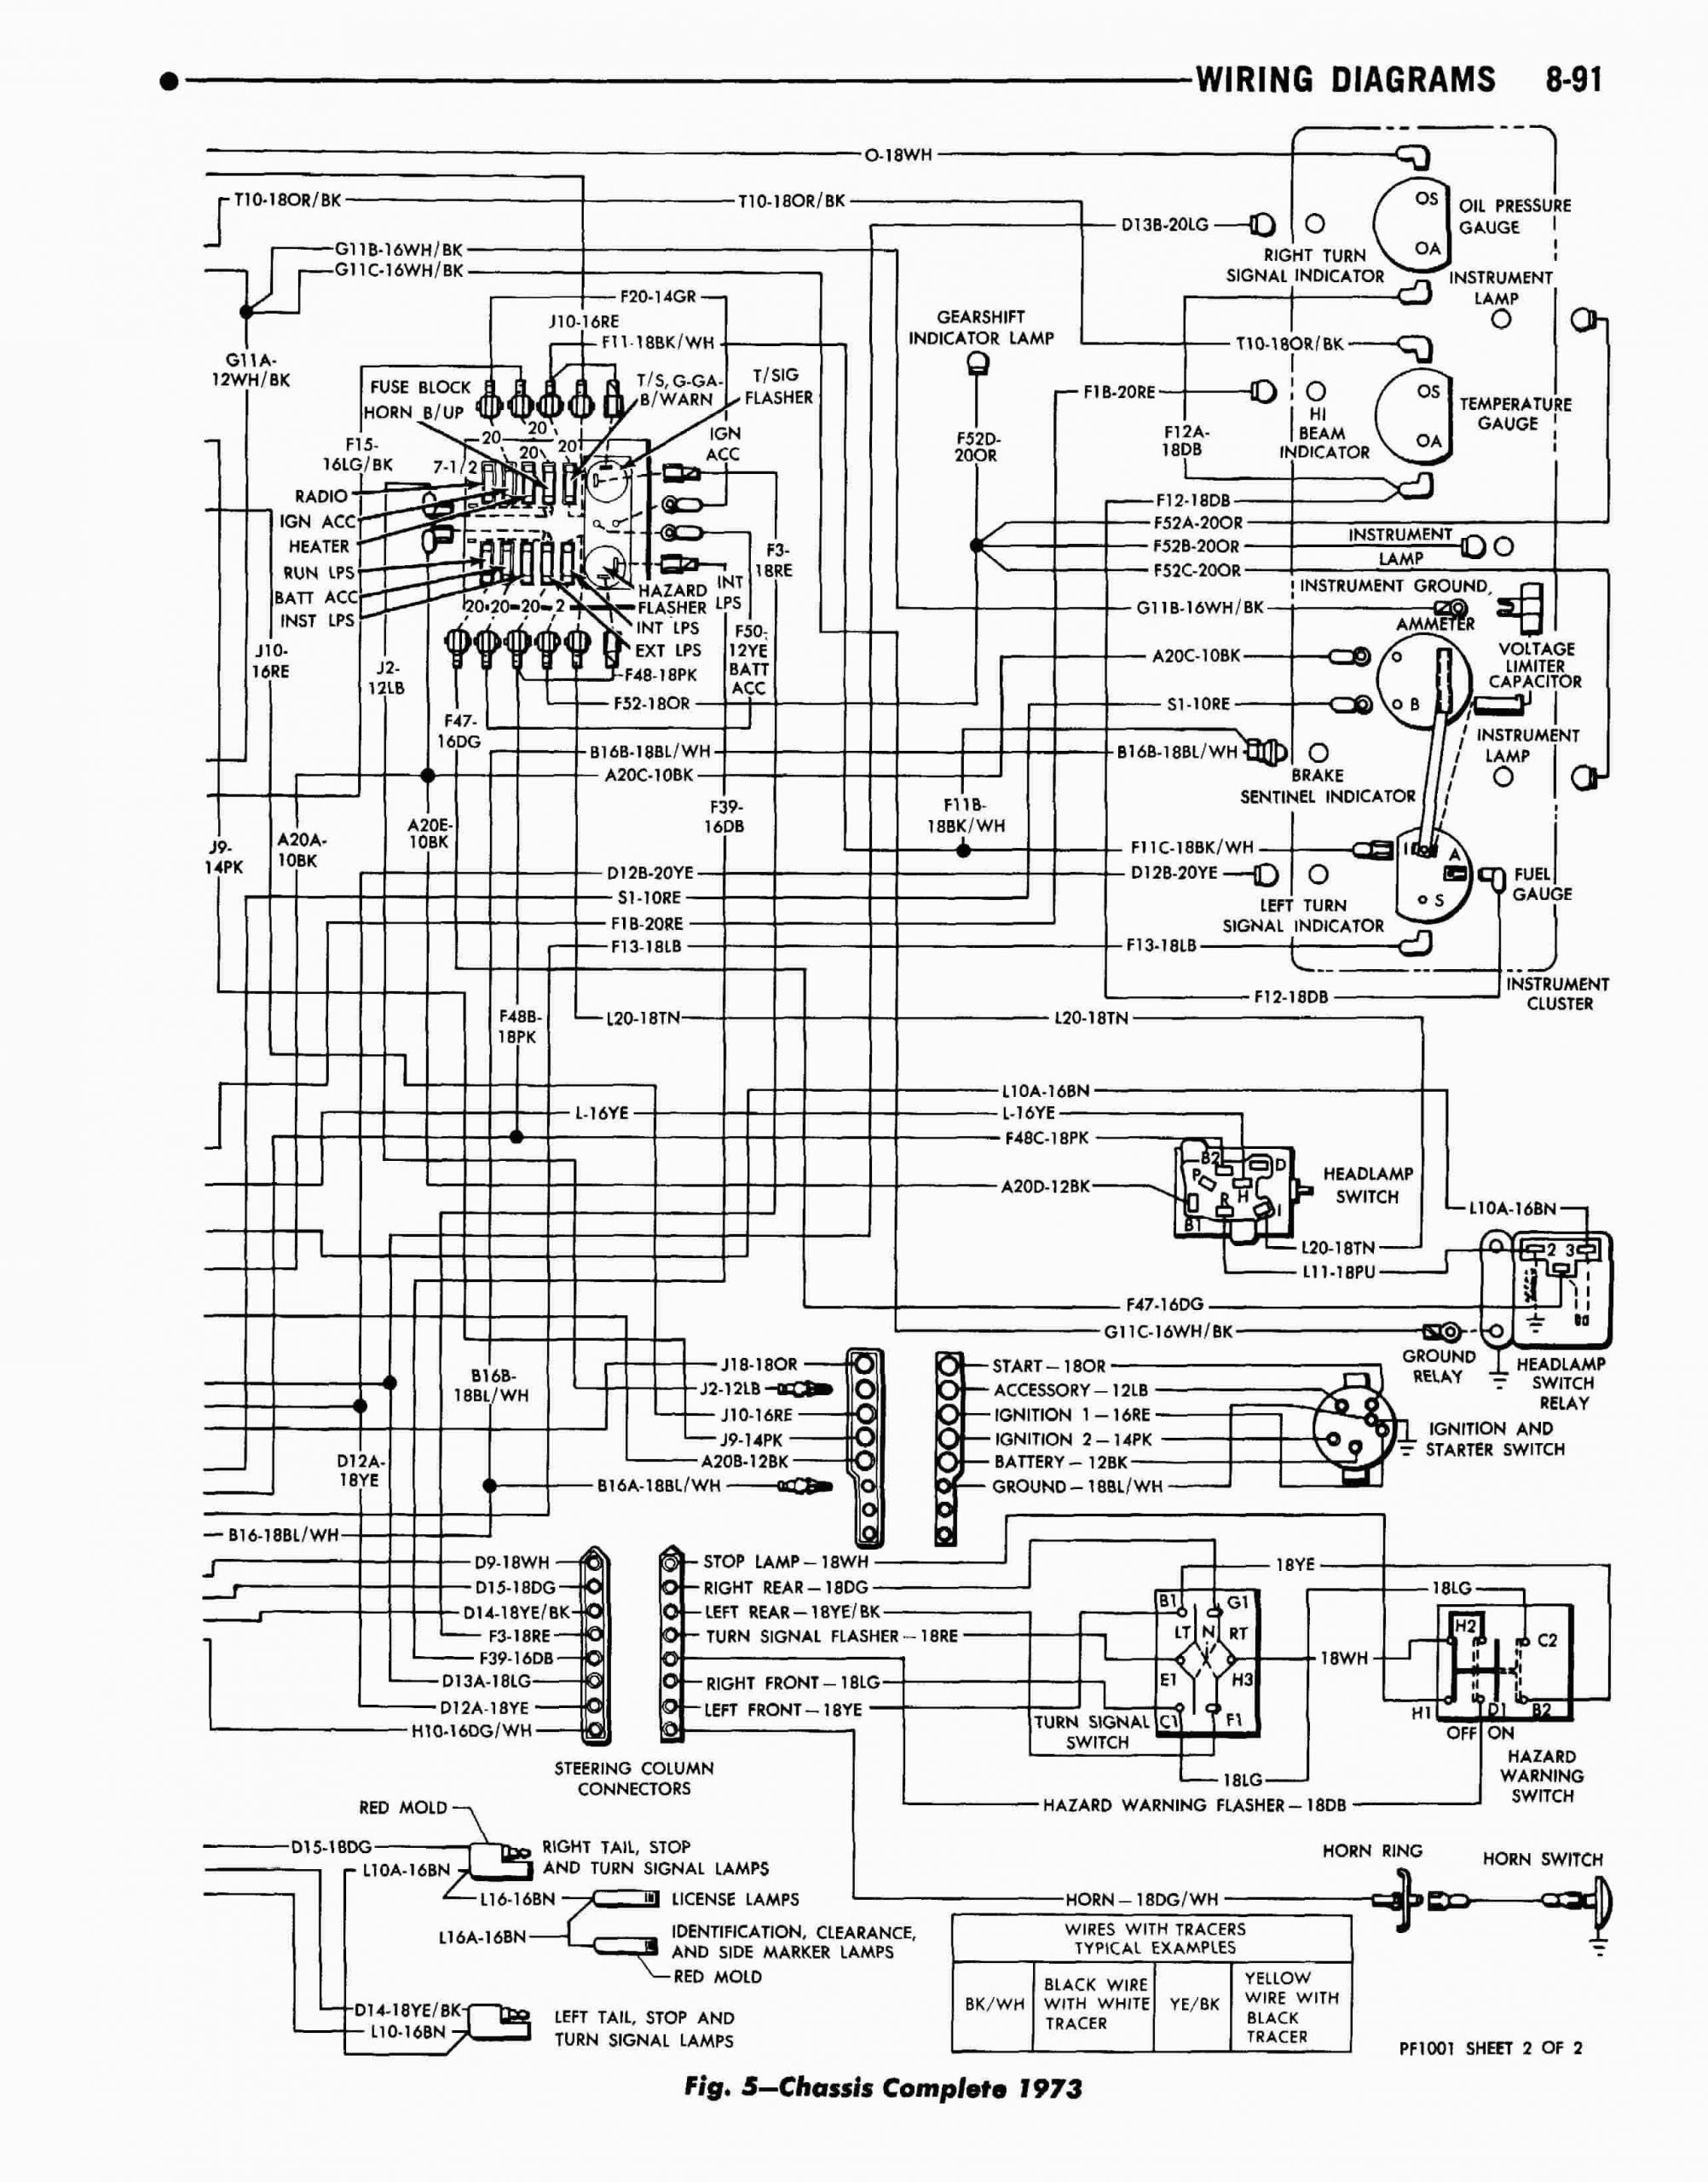 Sk750 Ditch Witch Wiring Diagram Ditch Witch Parts Diagram Of Sk750 Ditch Witch Wiring Diagram